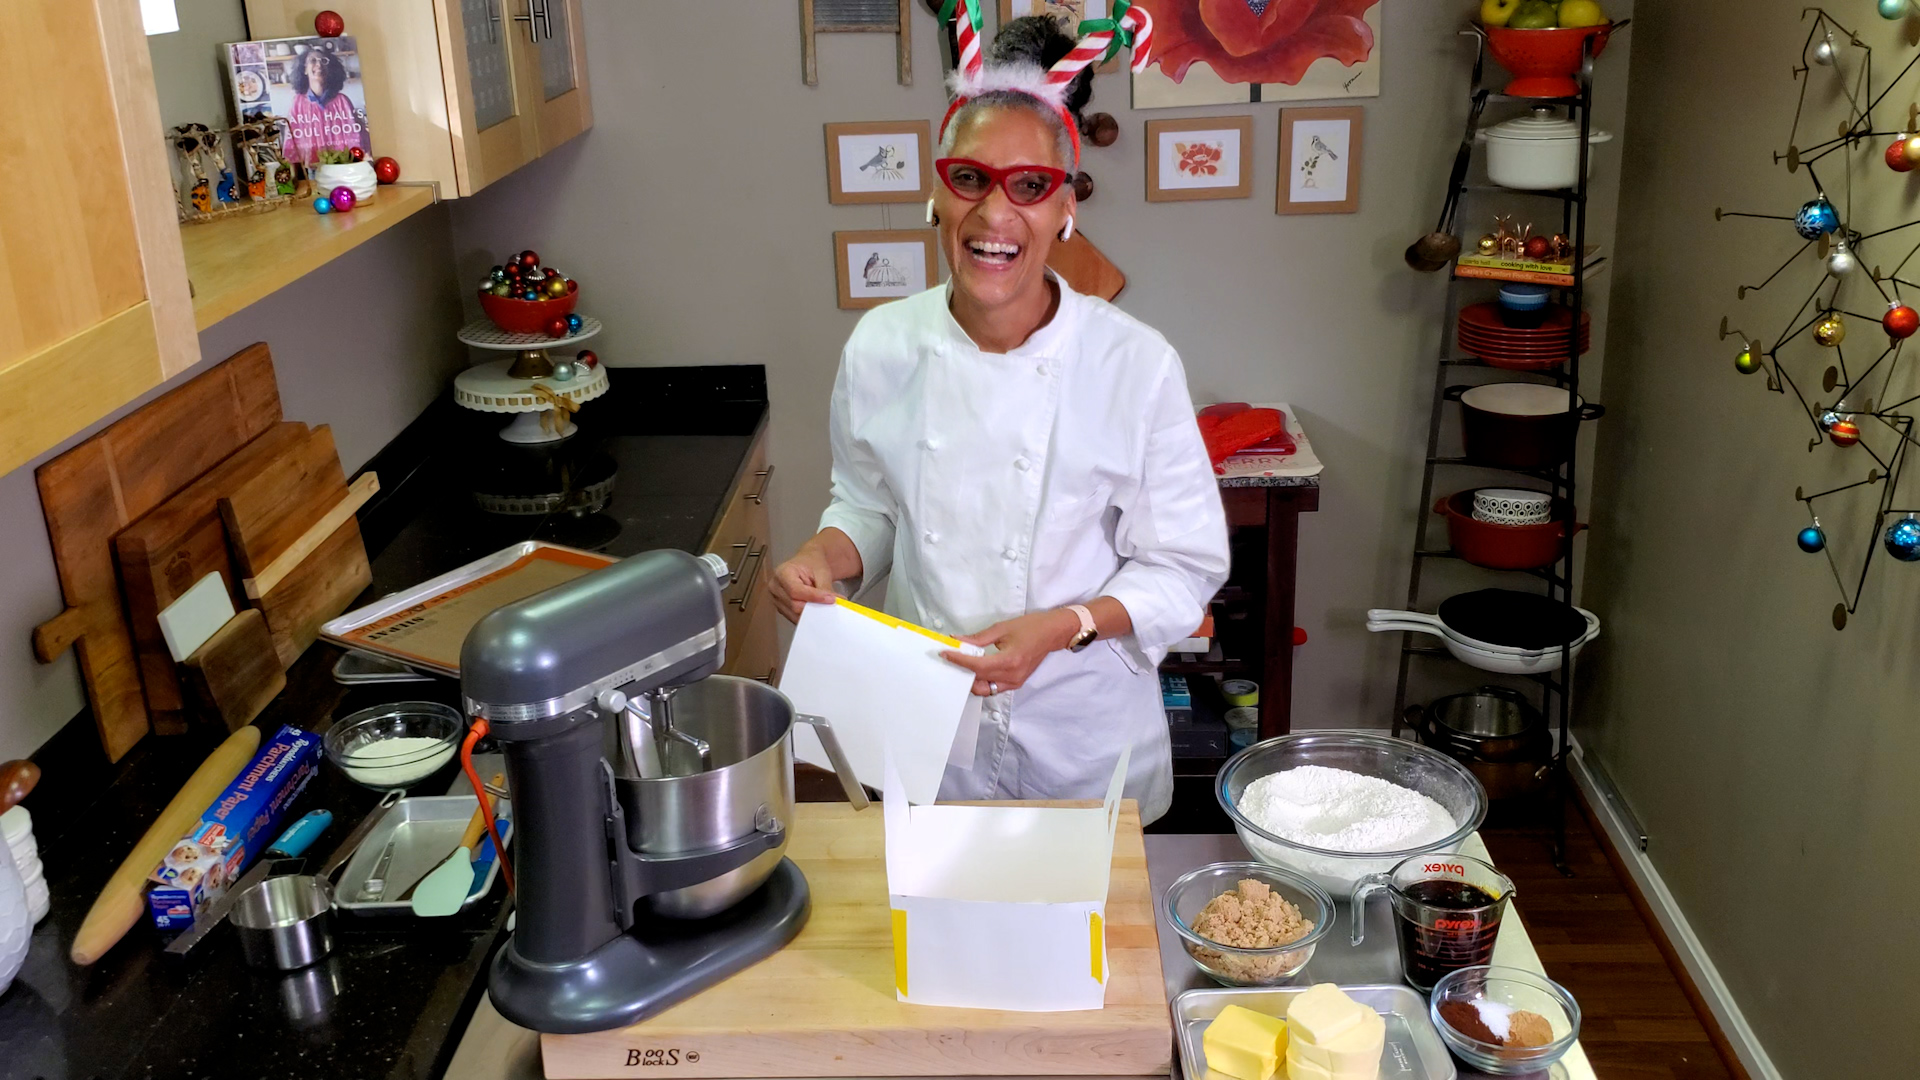 Chef Carla Hall - How to Make a Gingerbread House